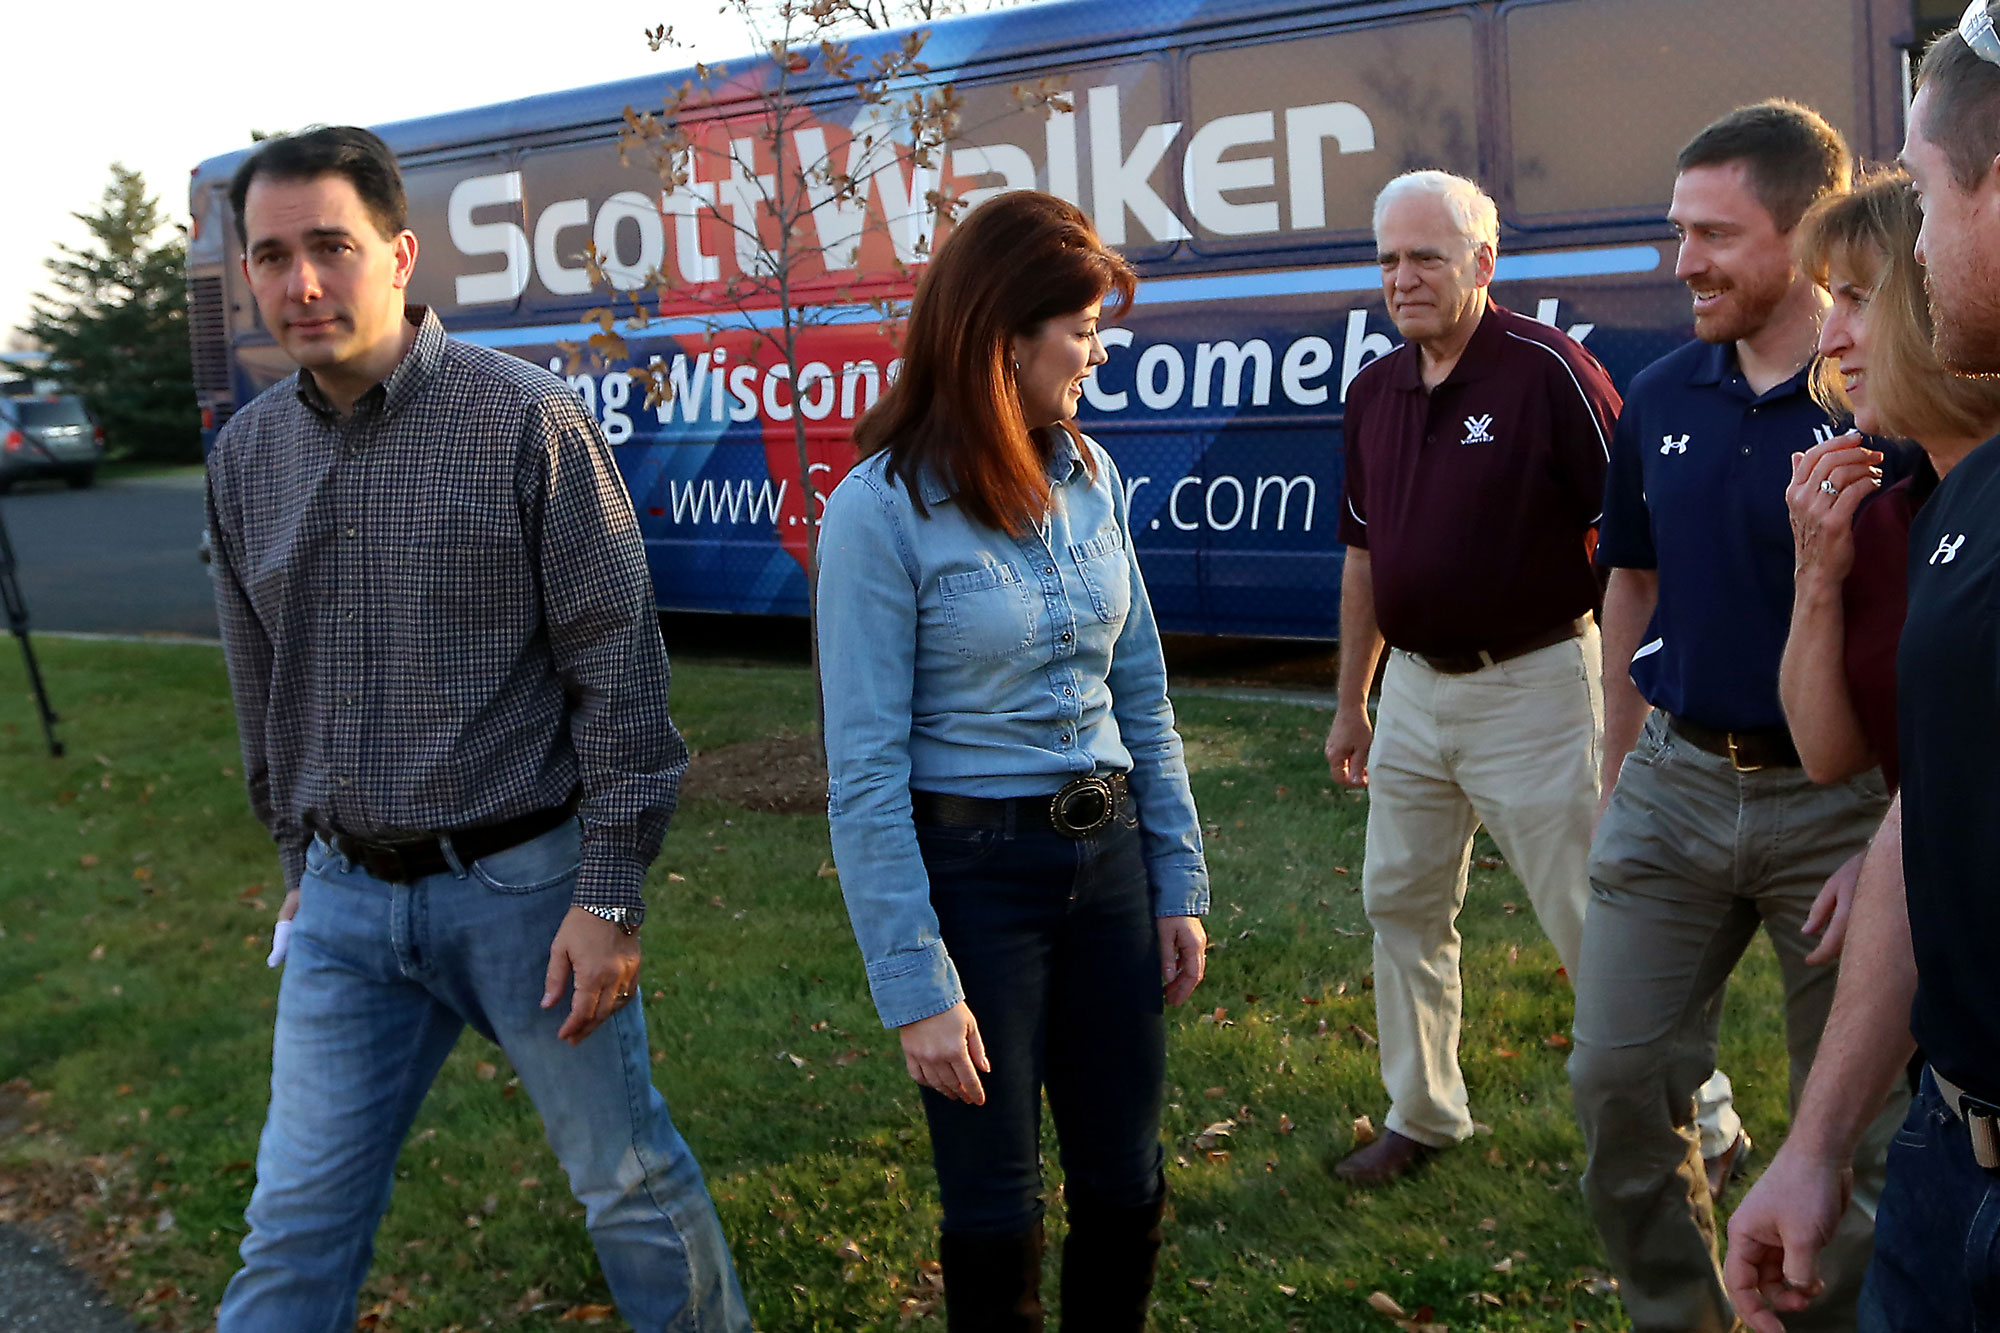 Wisconsin Governor Race